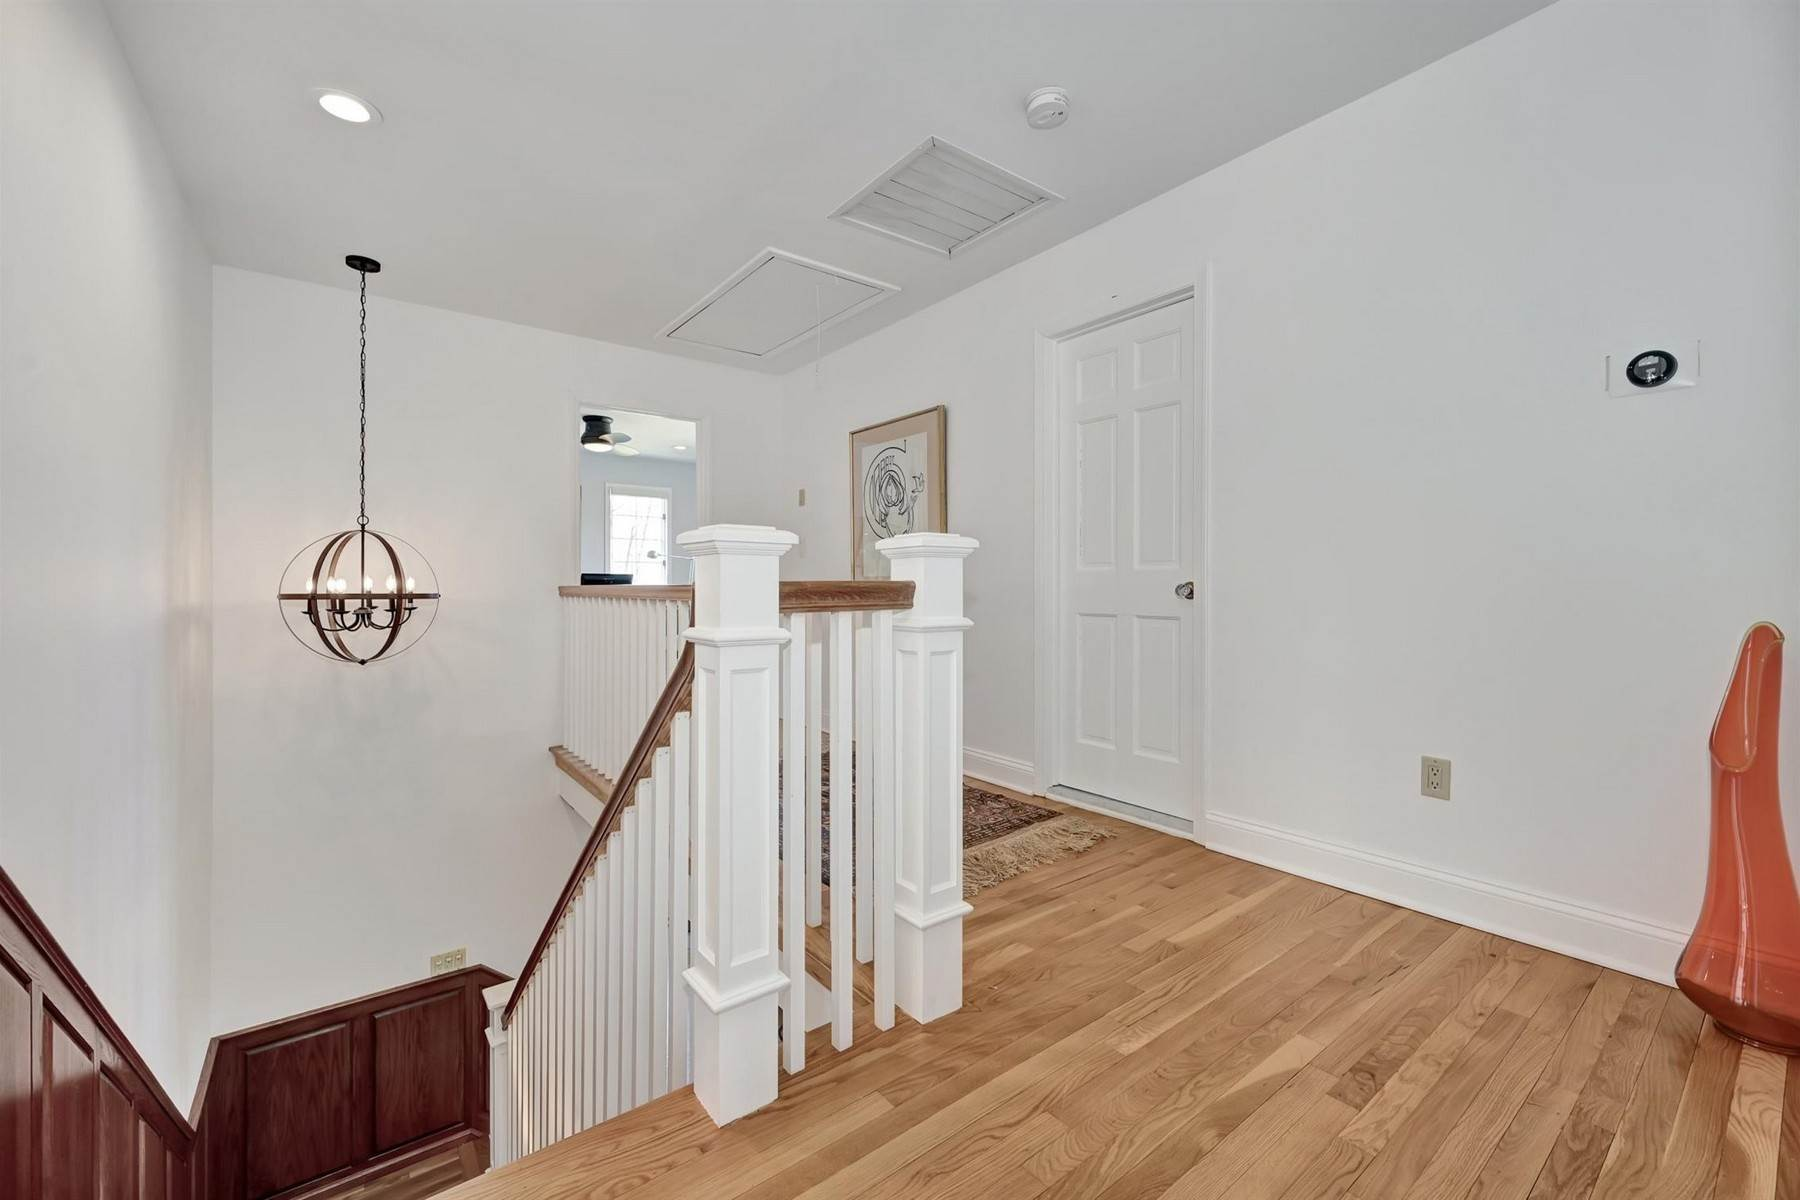 22. Single Family Homes for Sale at Elegance Meets Edgy Infused with Exceptional Quality and Custom Updates 130 Lippincott Road Little Silver, New Jersey 07739 United States